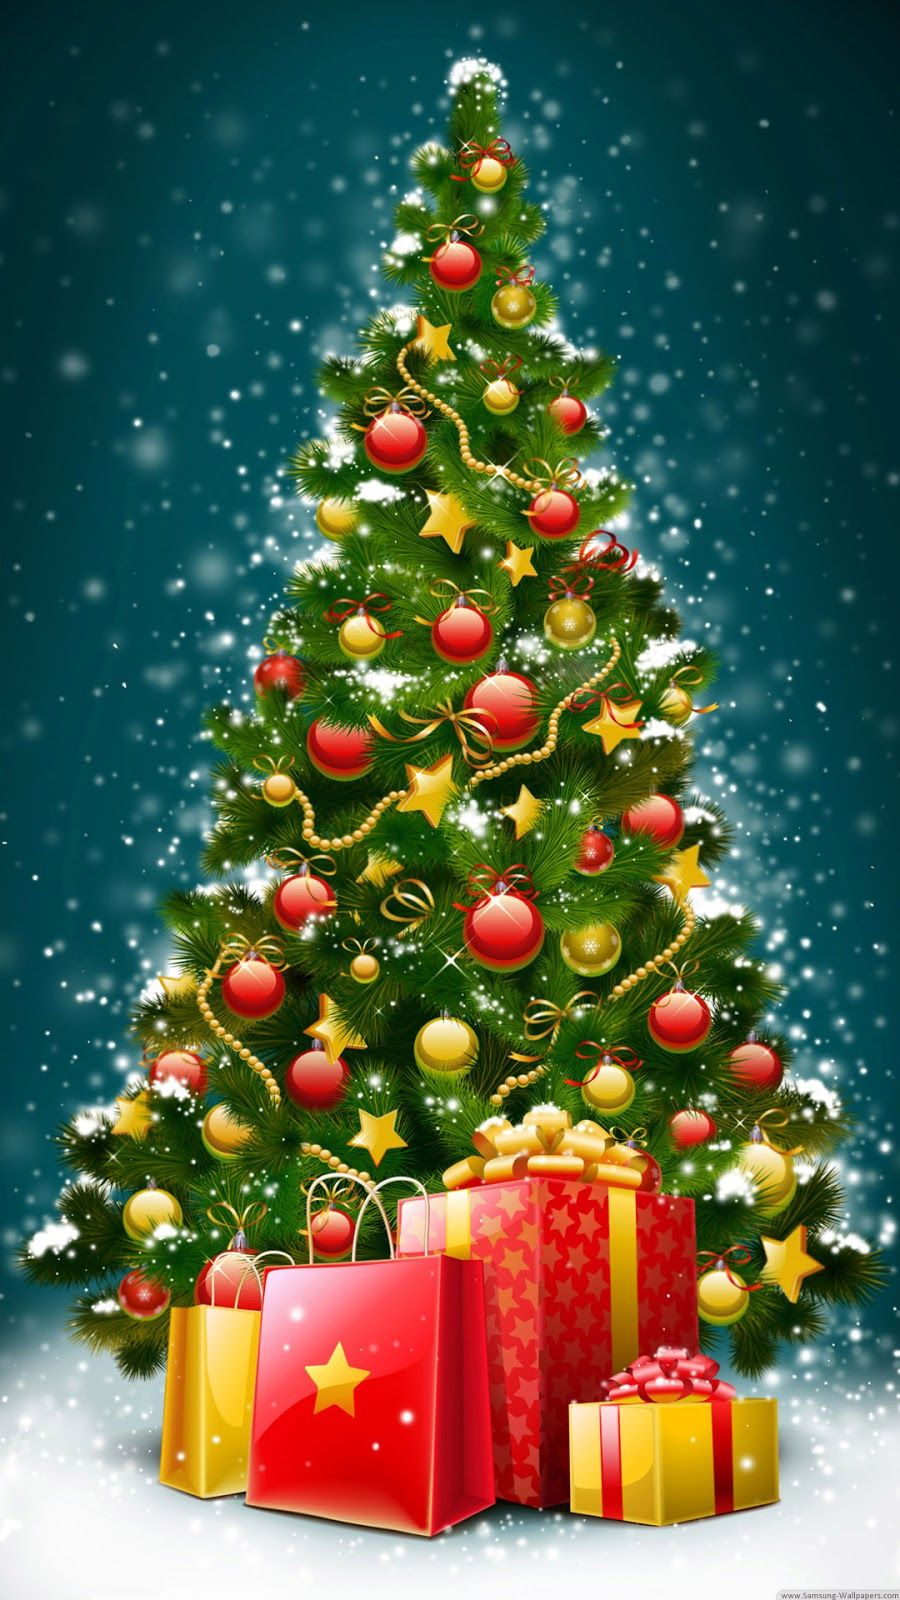 free animated christmas wallpapers for christmas trees 3 - Free Animated Christmas Wallpaper